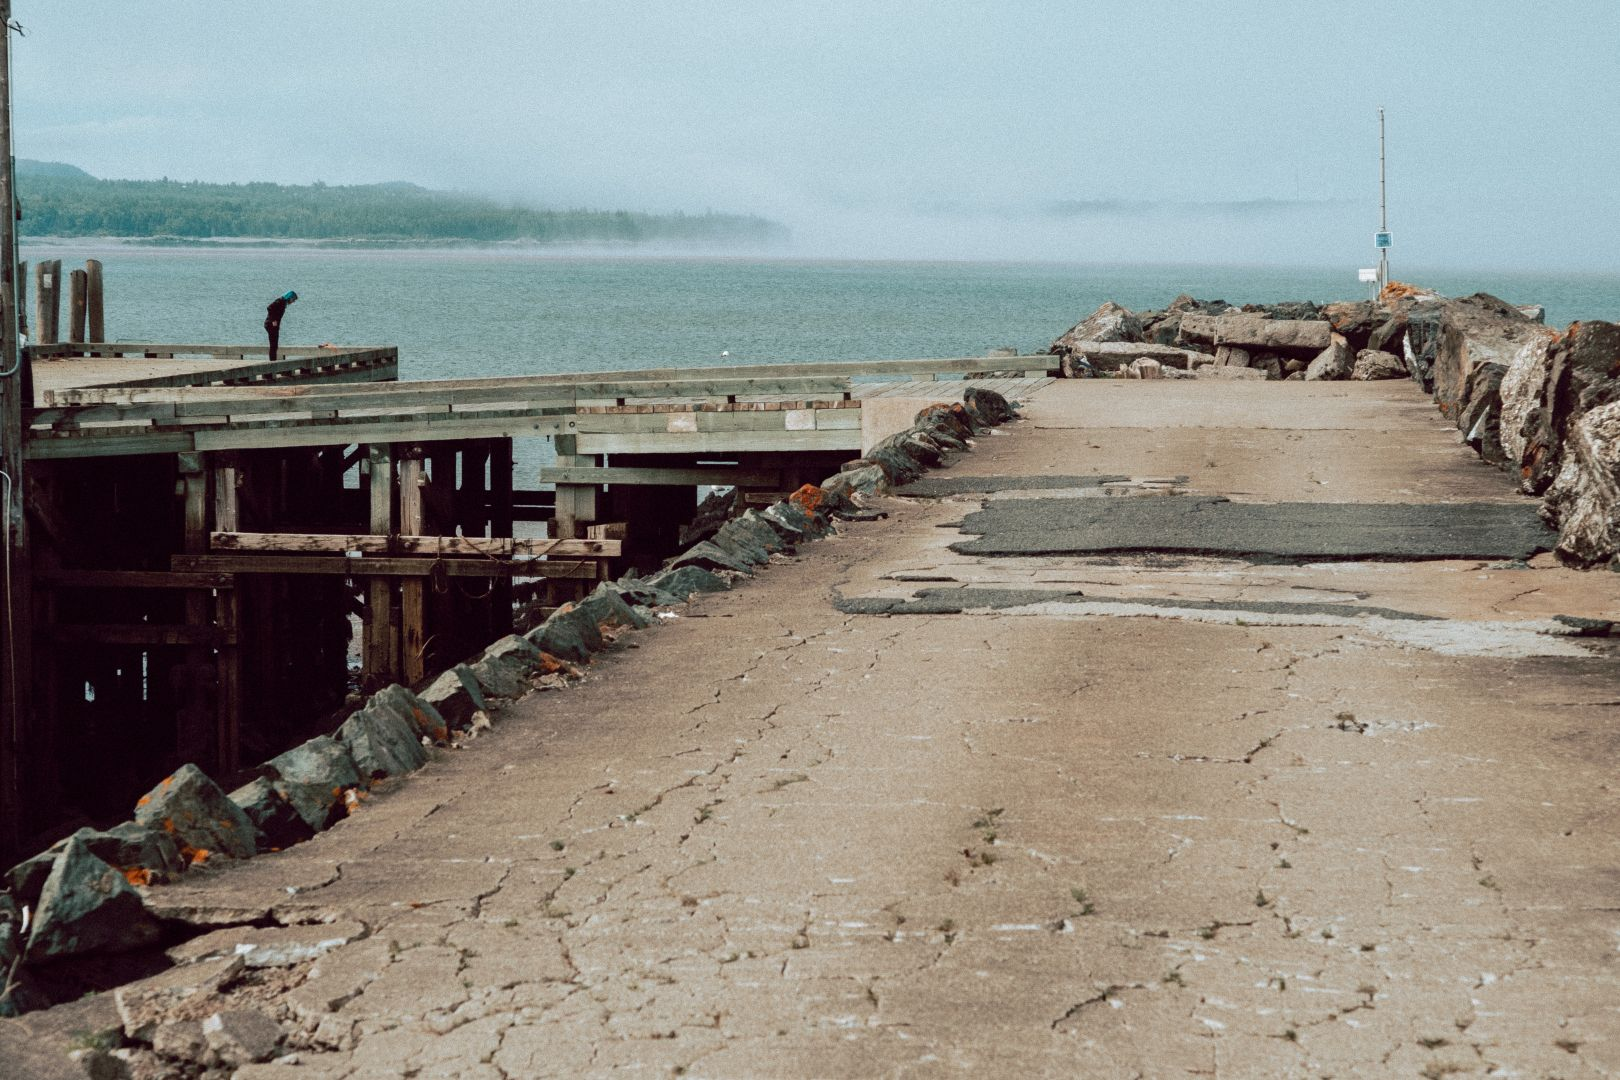 A photo depicting A Fishing Dock on the Outskirts of Saint John